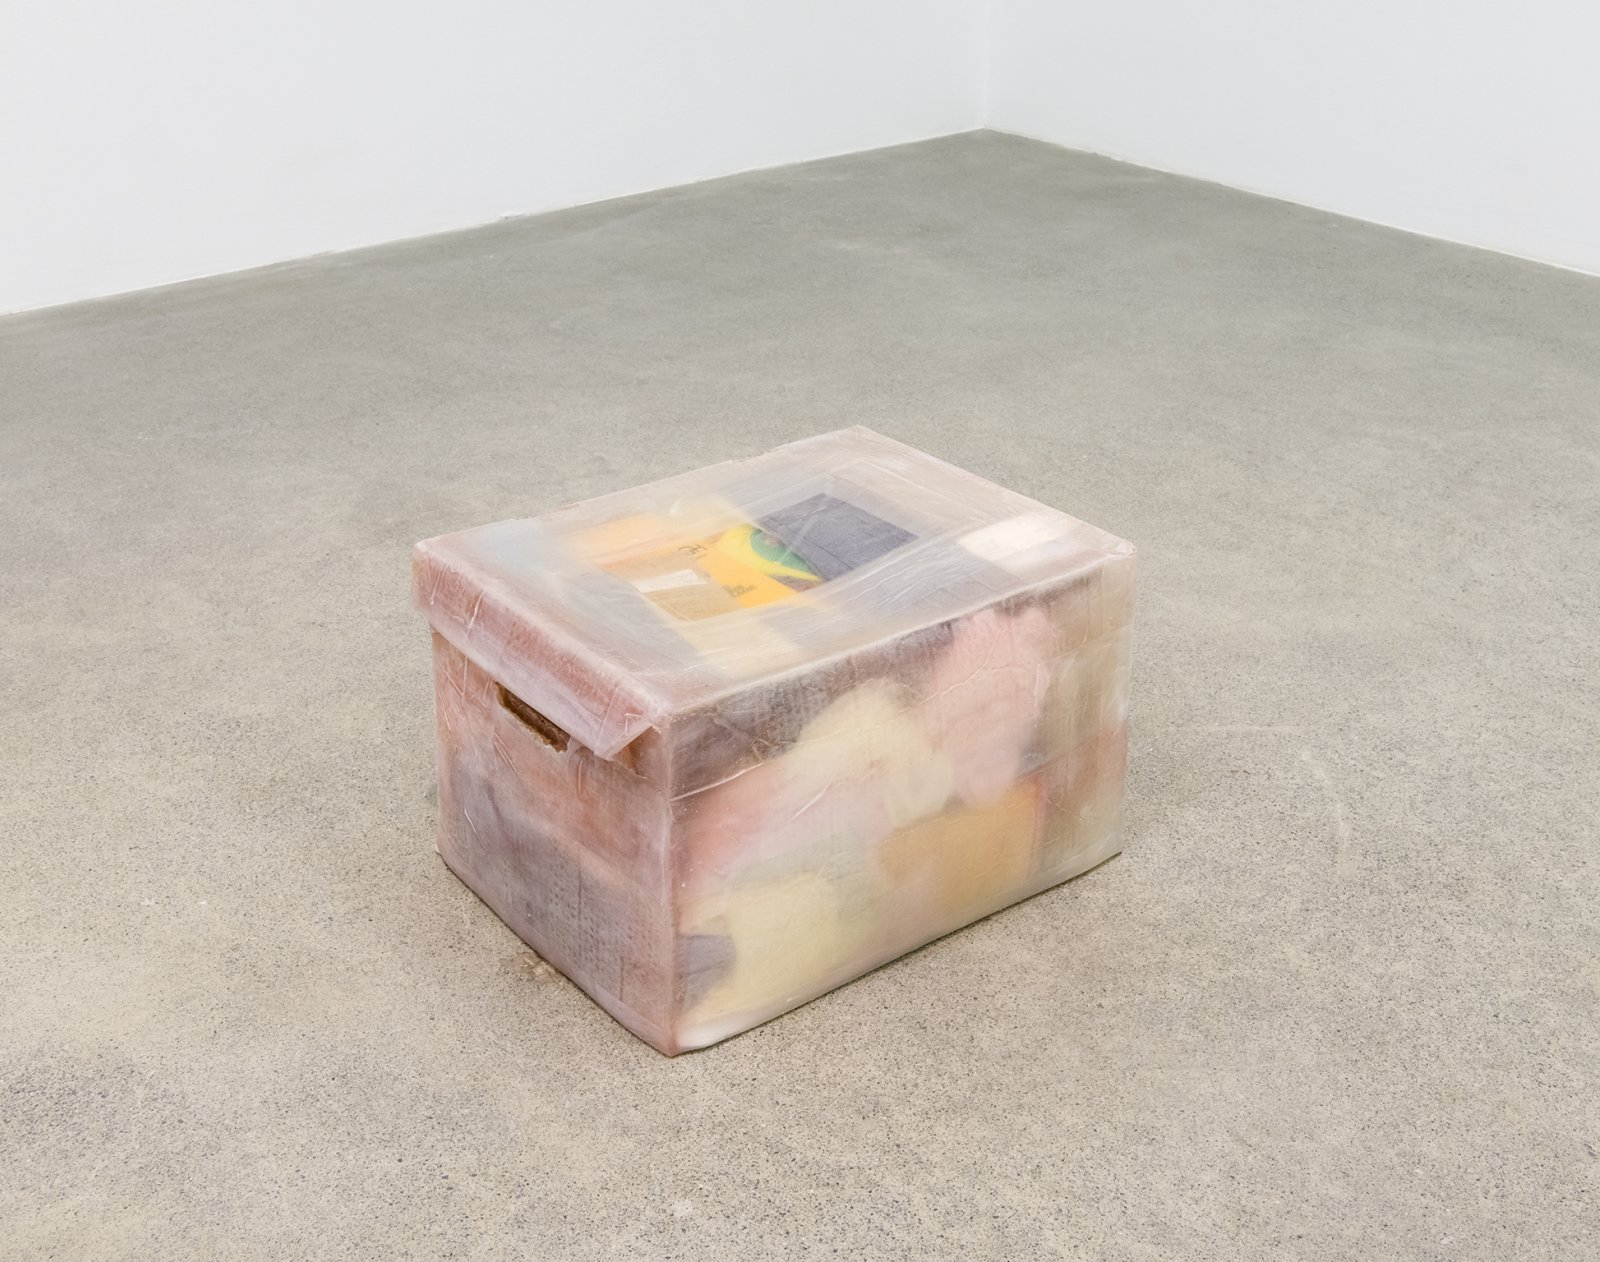 Liz Magor, All the Names (Legs), 2016, silicone rubber, miscellaneous objects, 11 x 18 x 13 in. (27 x 45 x 33 cm) by Liz Magor